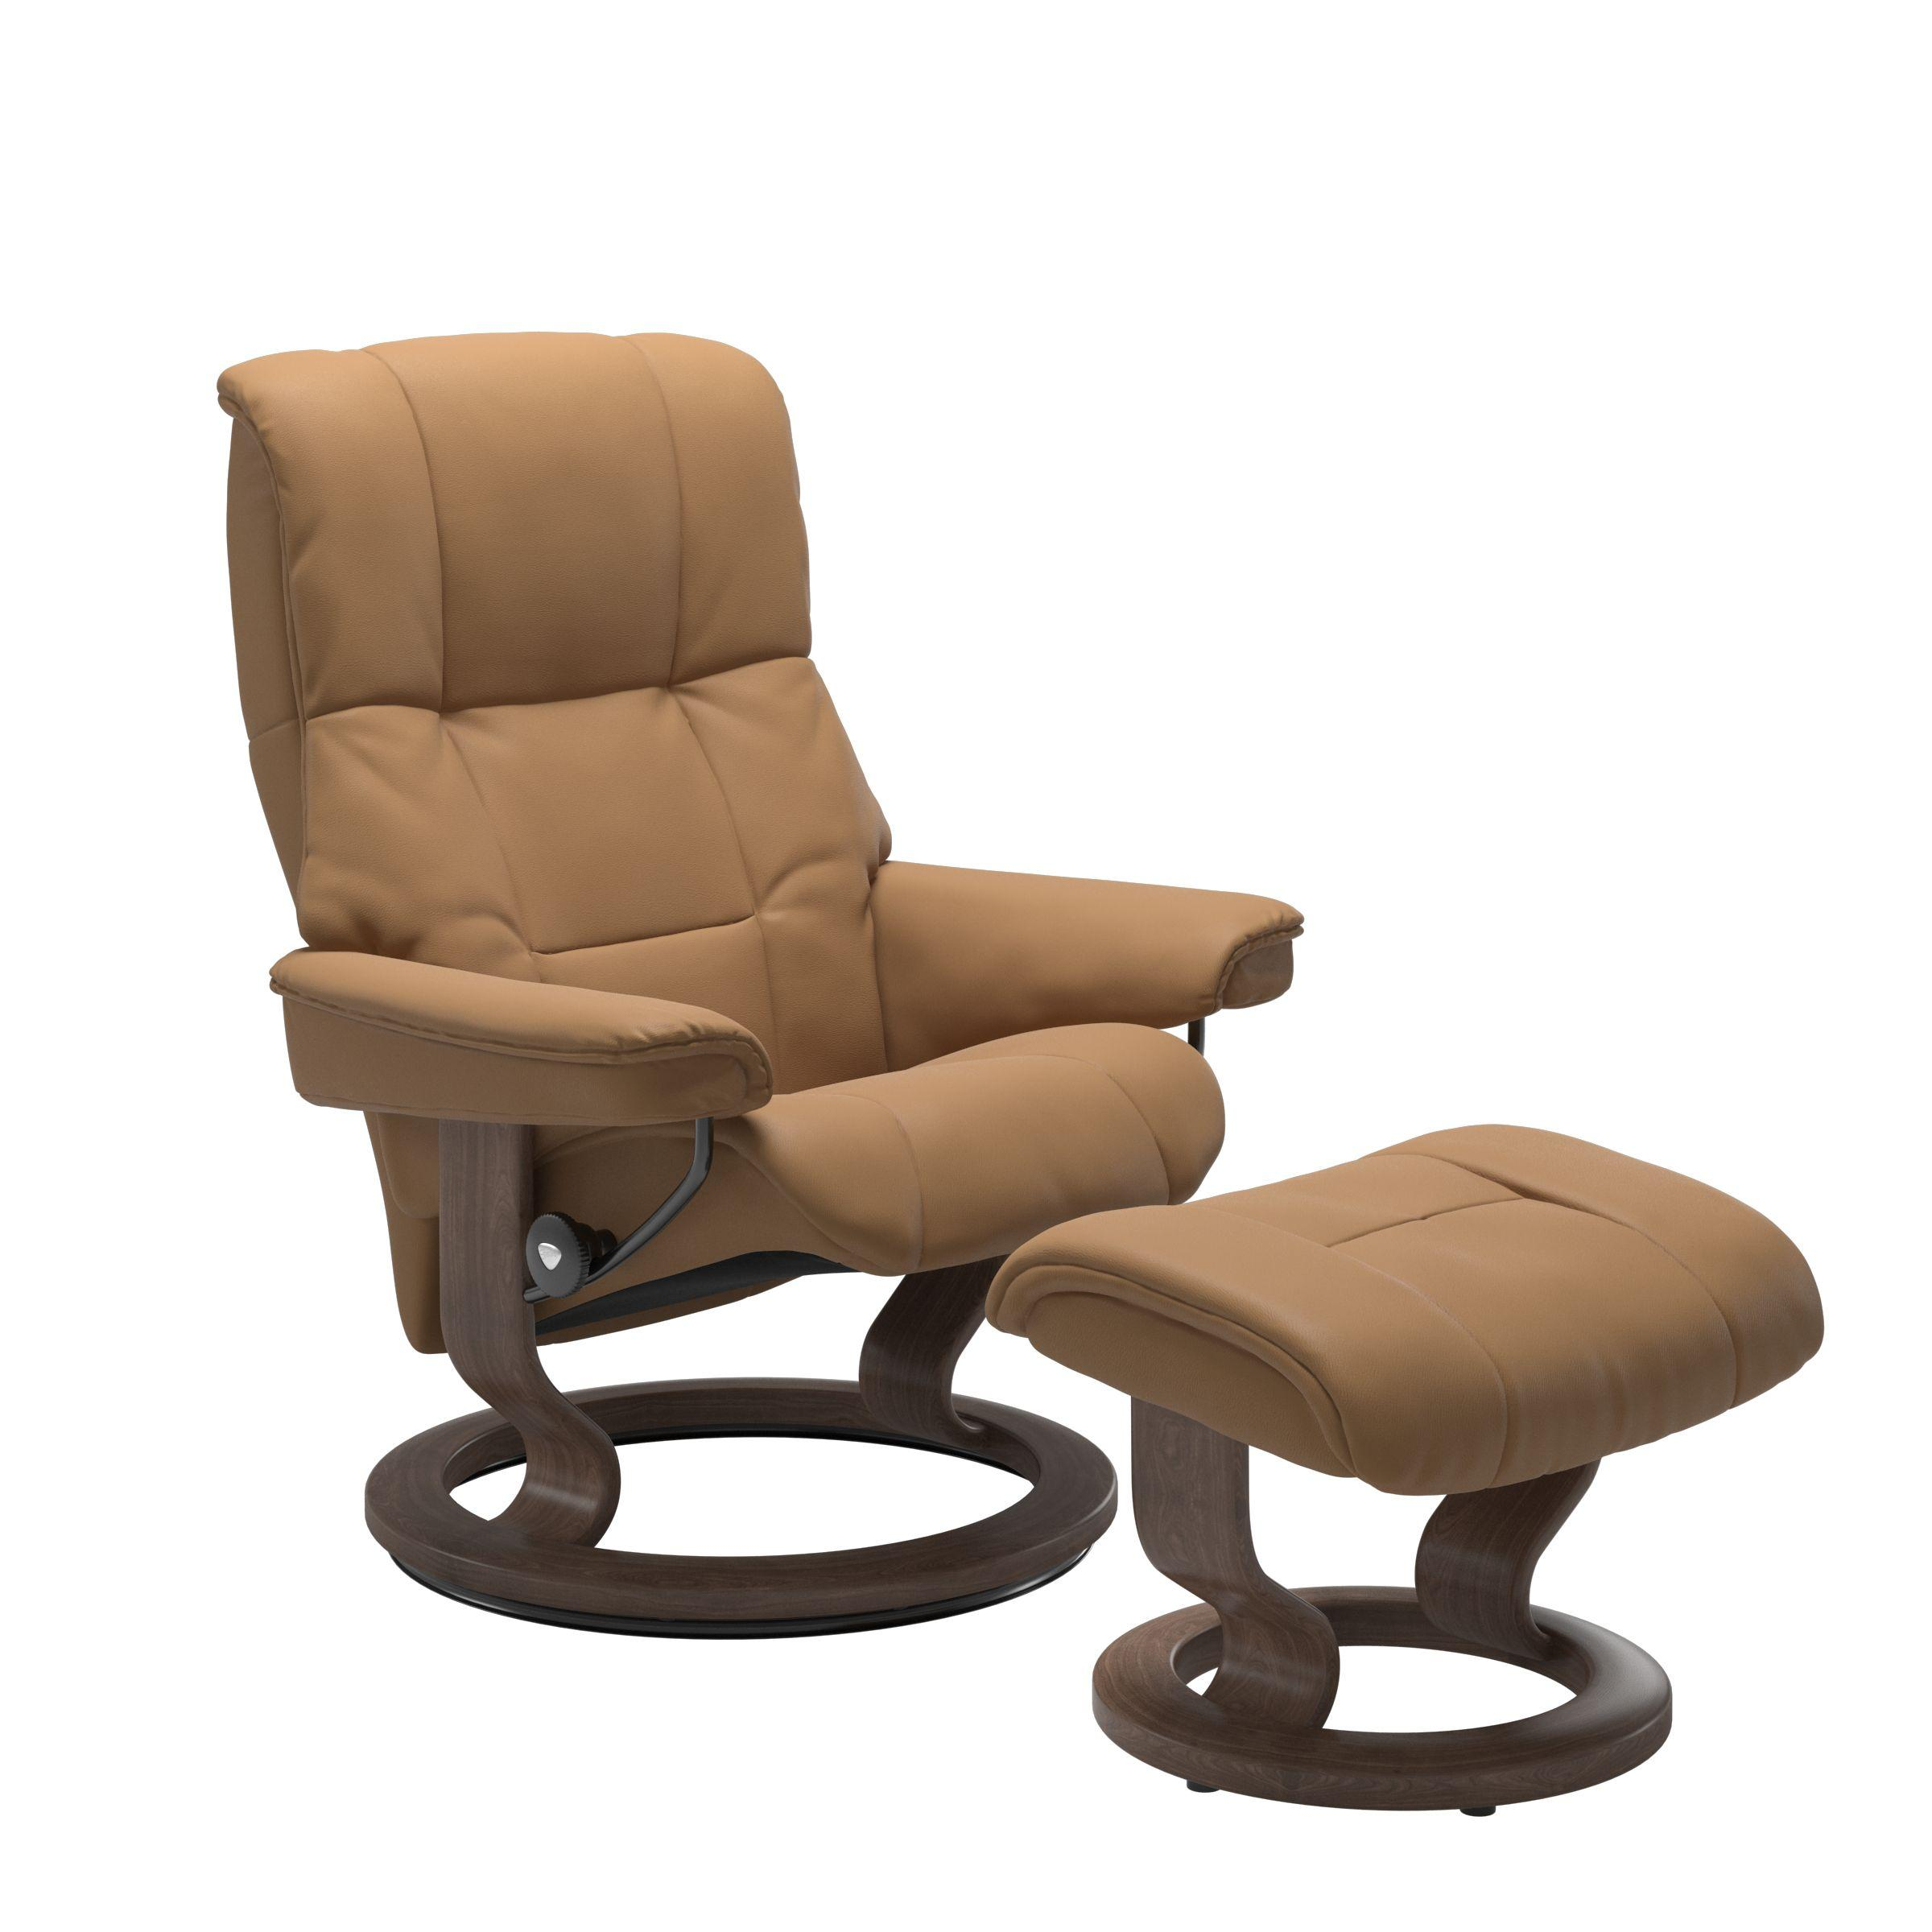 Stressless By EkornesStressless Mayfair Large Classic Base Chair And Ottoman